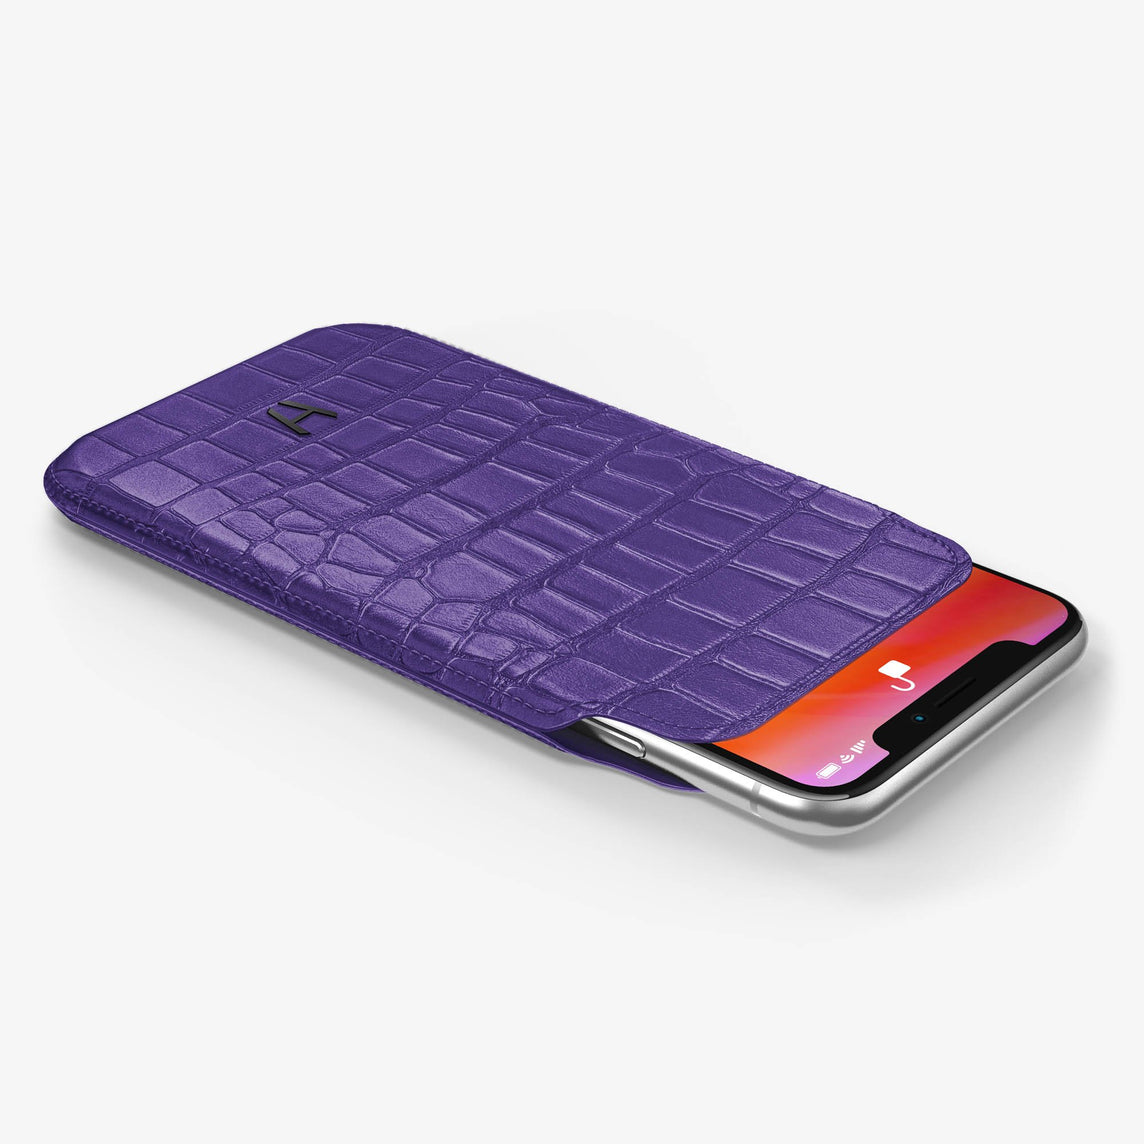 Alligator [iPhone Sleeve Case] [model:iphone-xs-case] [colour:purple] [finishing:black]